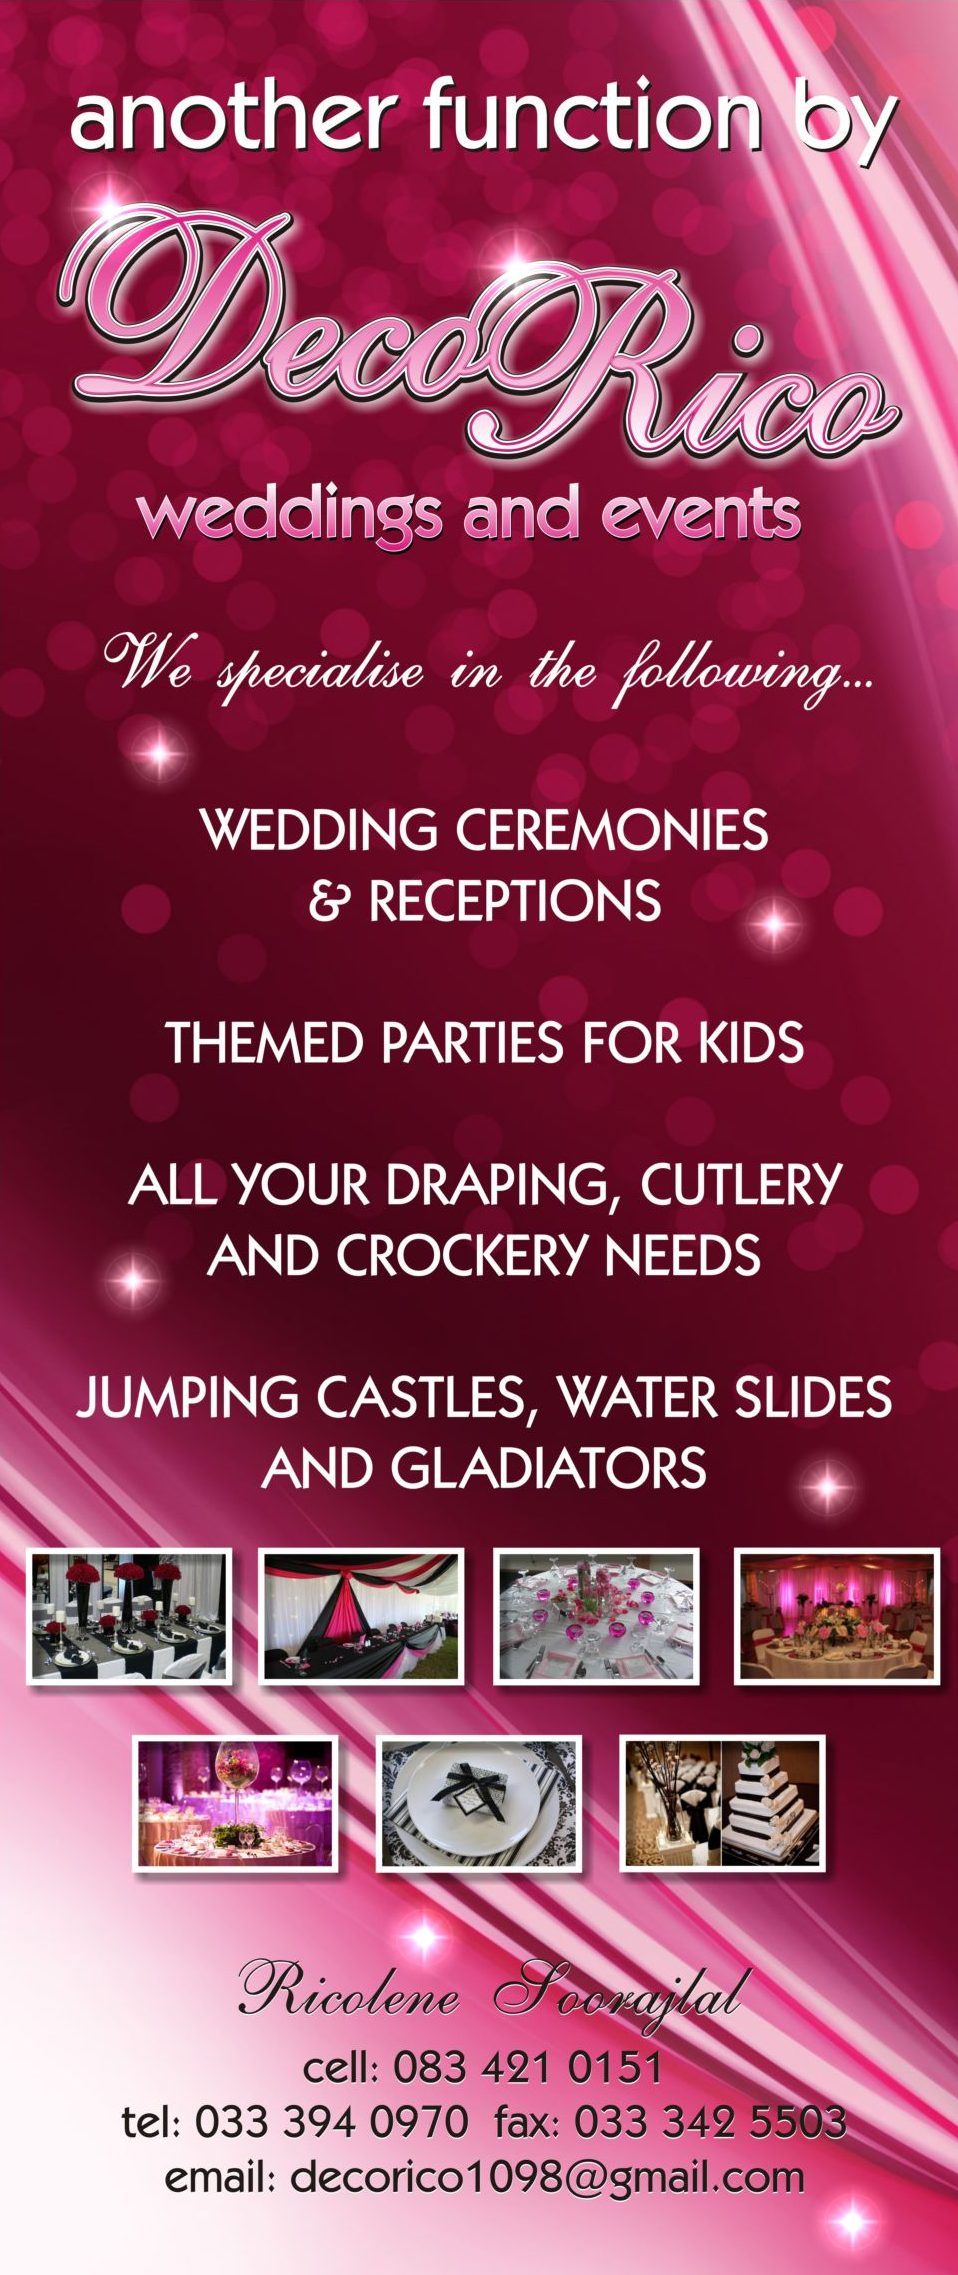 deco, rico, events, weddings, ceremonies, ceremony, receptions, themed, parties, party, kids, draping, cutlery, crockery, jumping, castles, water, slides, gladiators, banner, design, advertising, purple, functions, violet